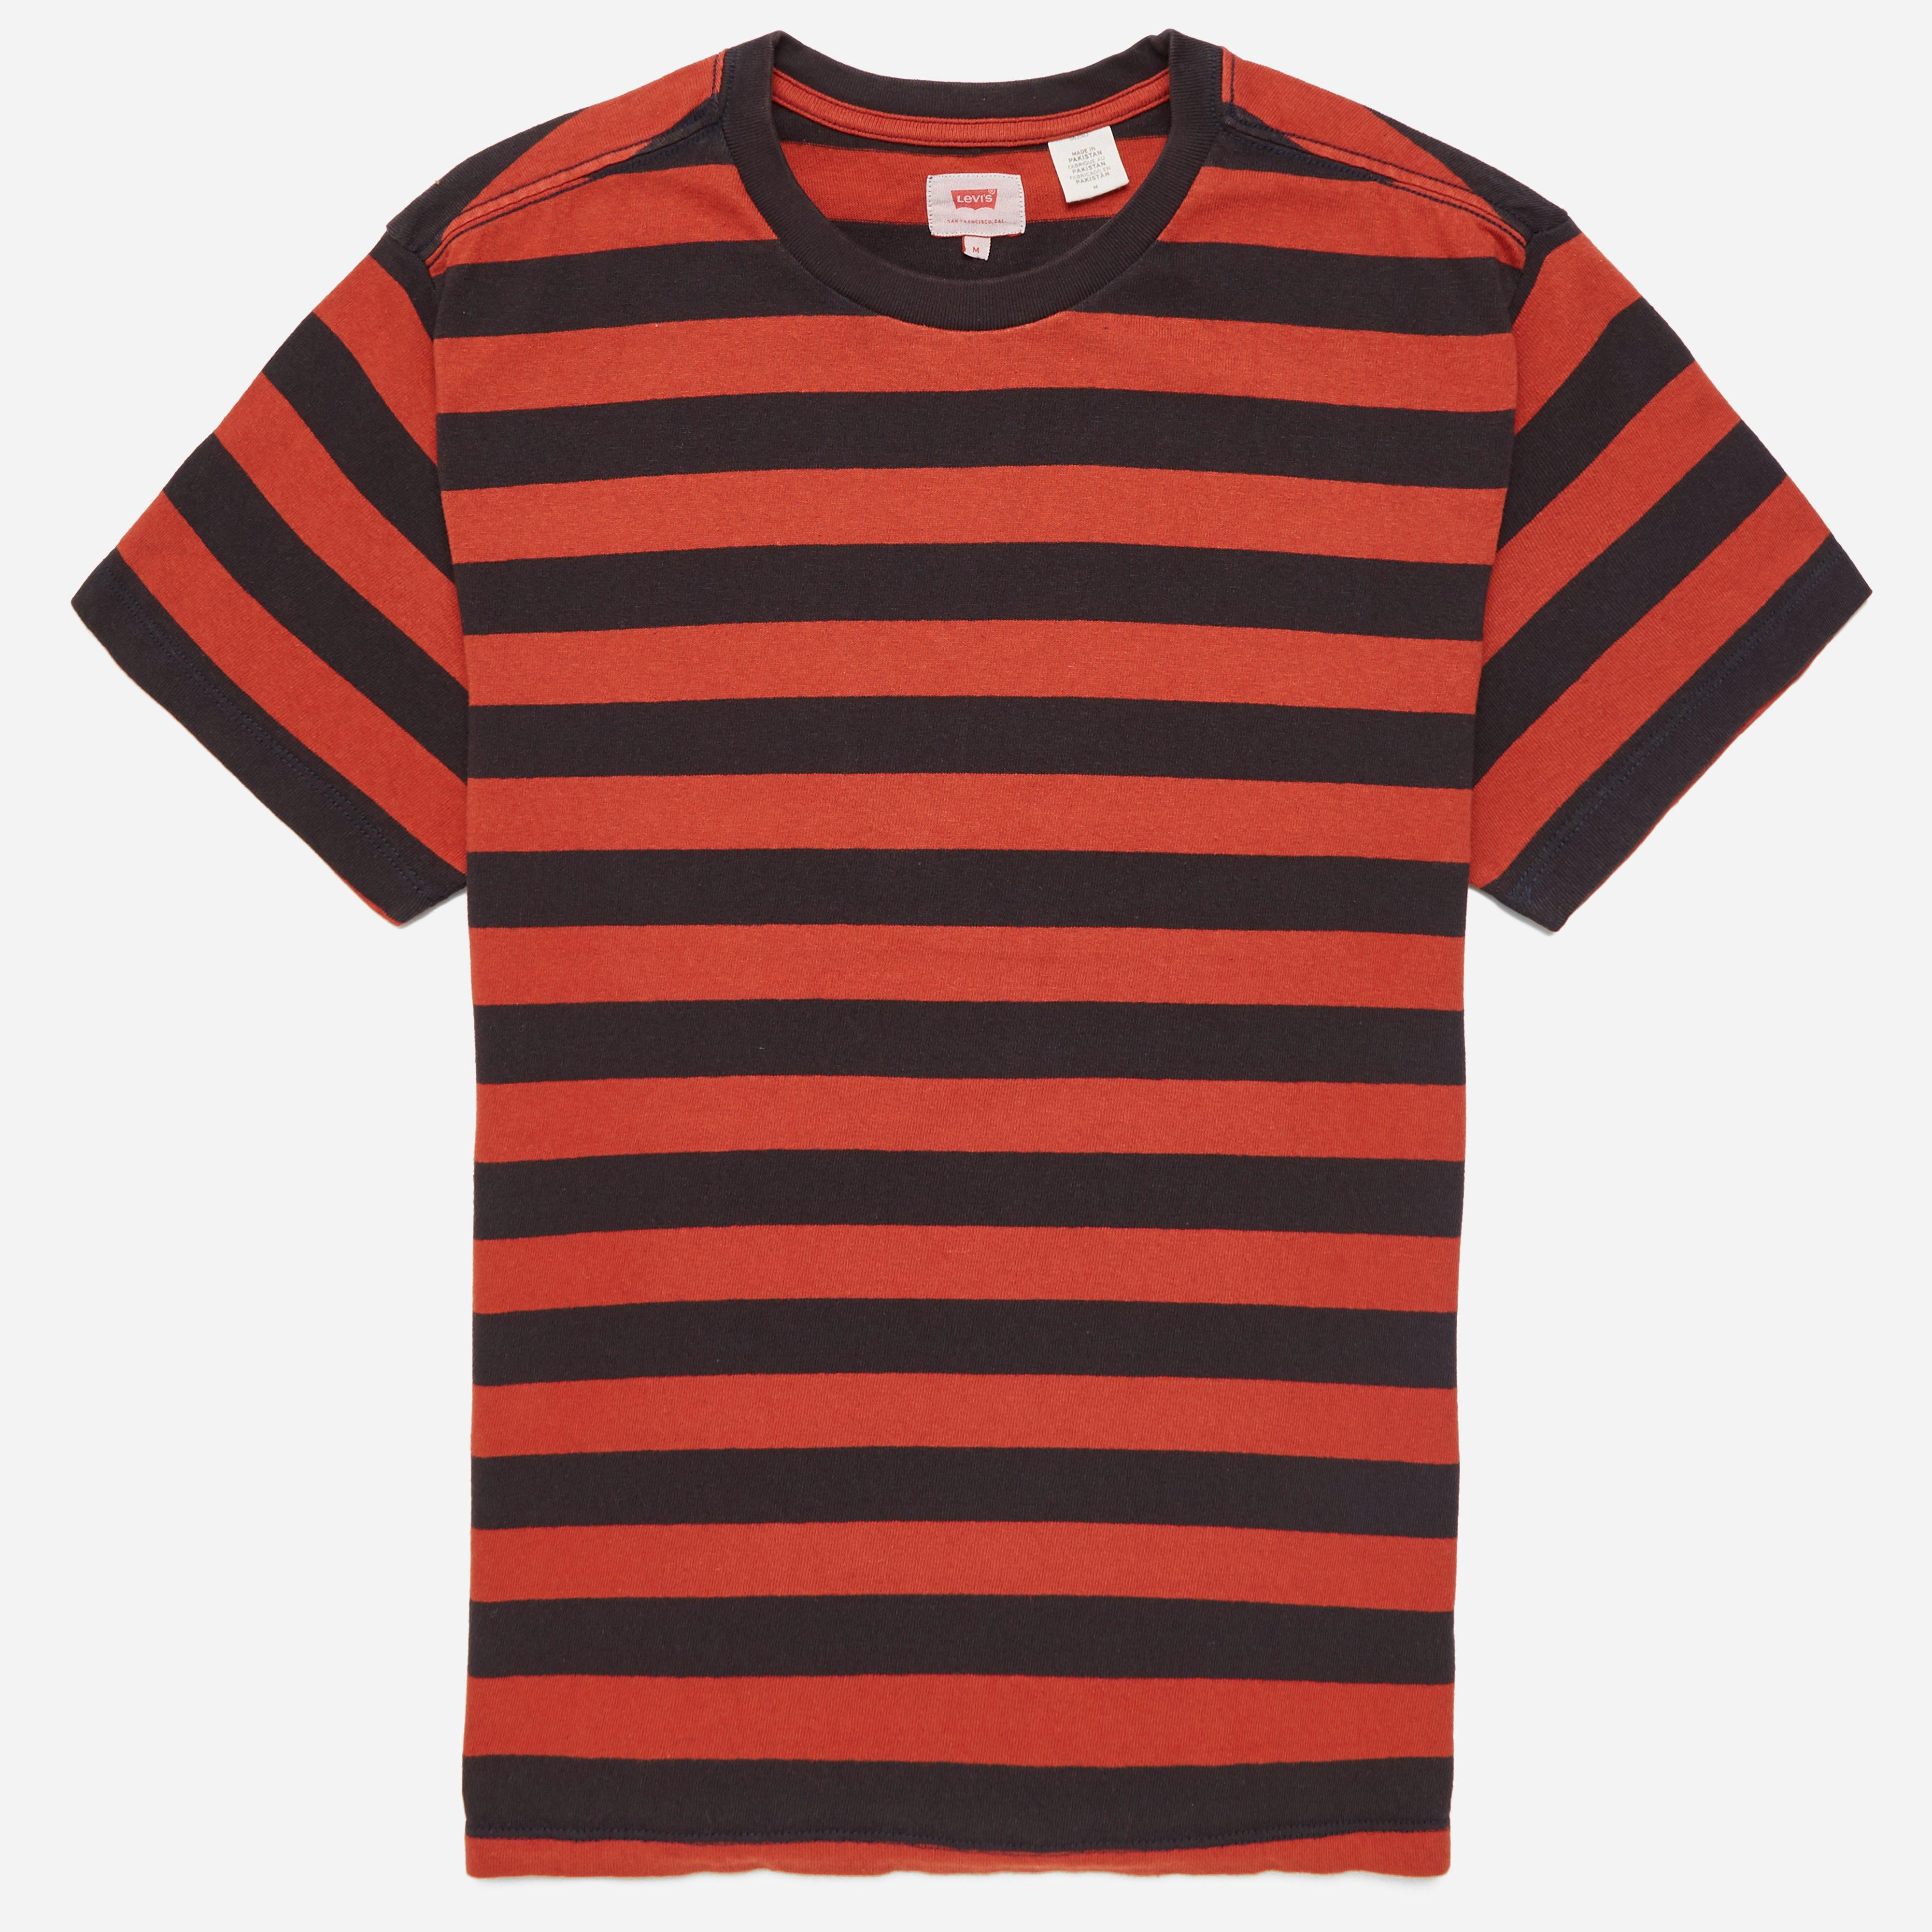 Levi's Red Tab Mighty T-shirt